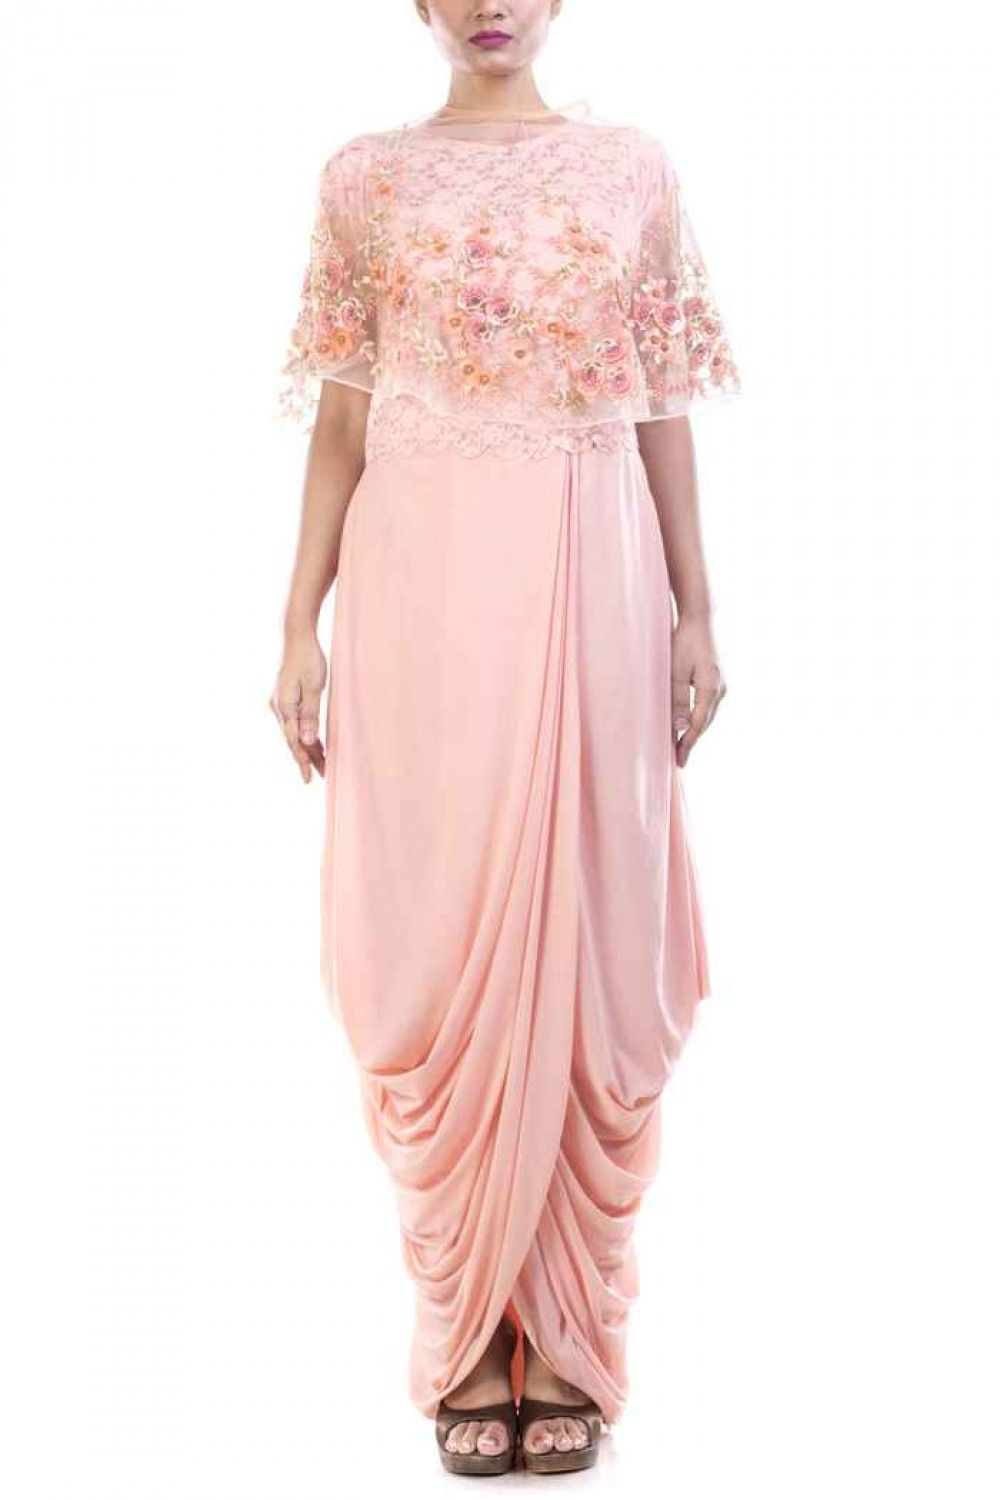 Seashell dhoti draped gown u cape set indian ethnic gowns